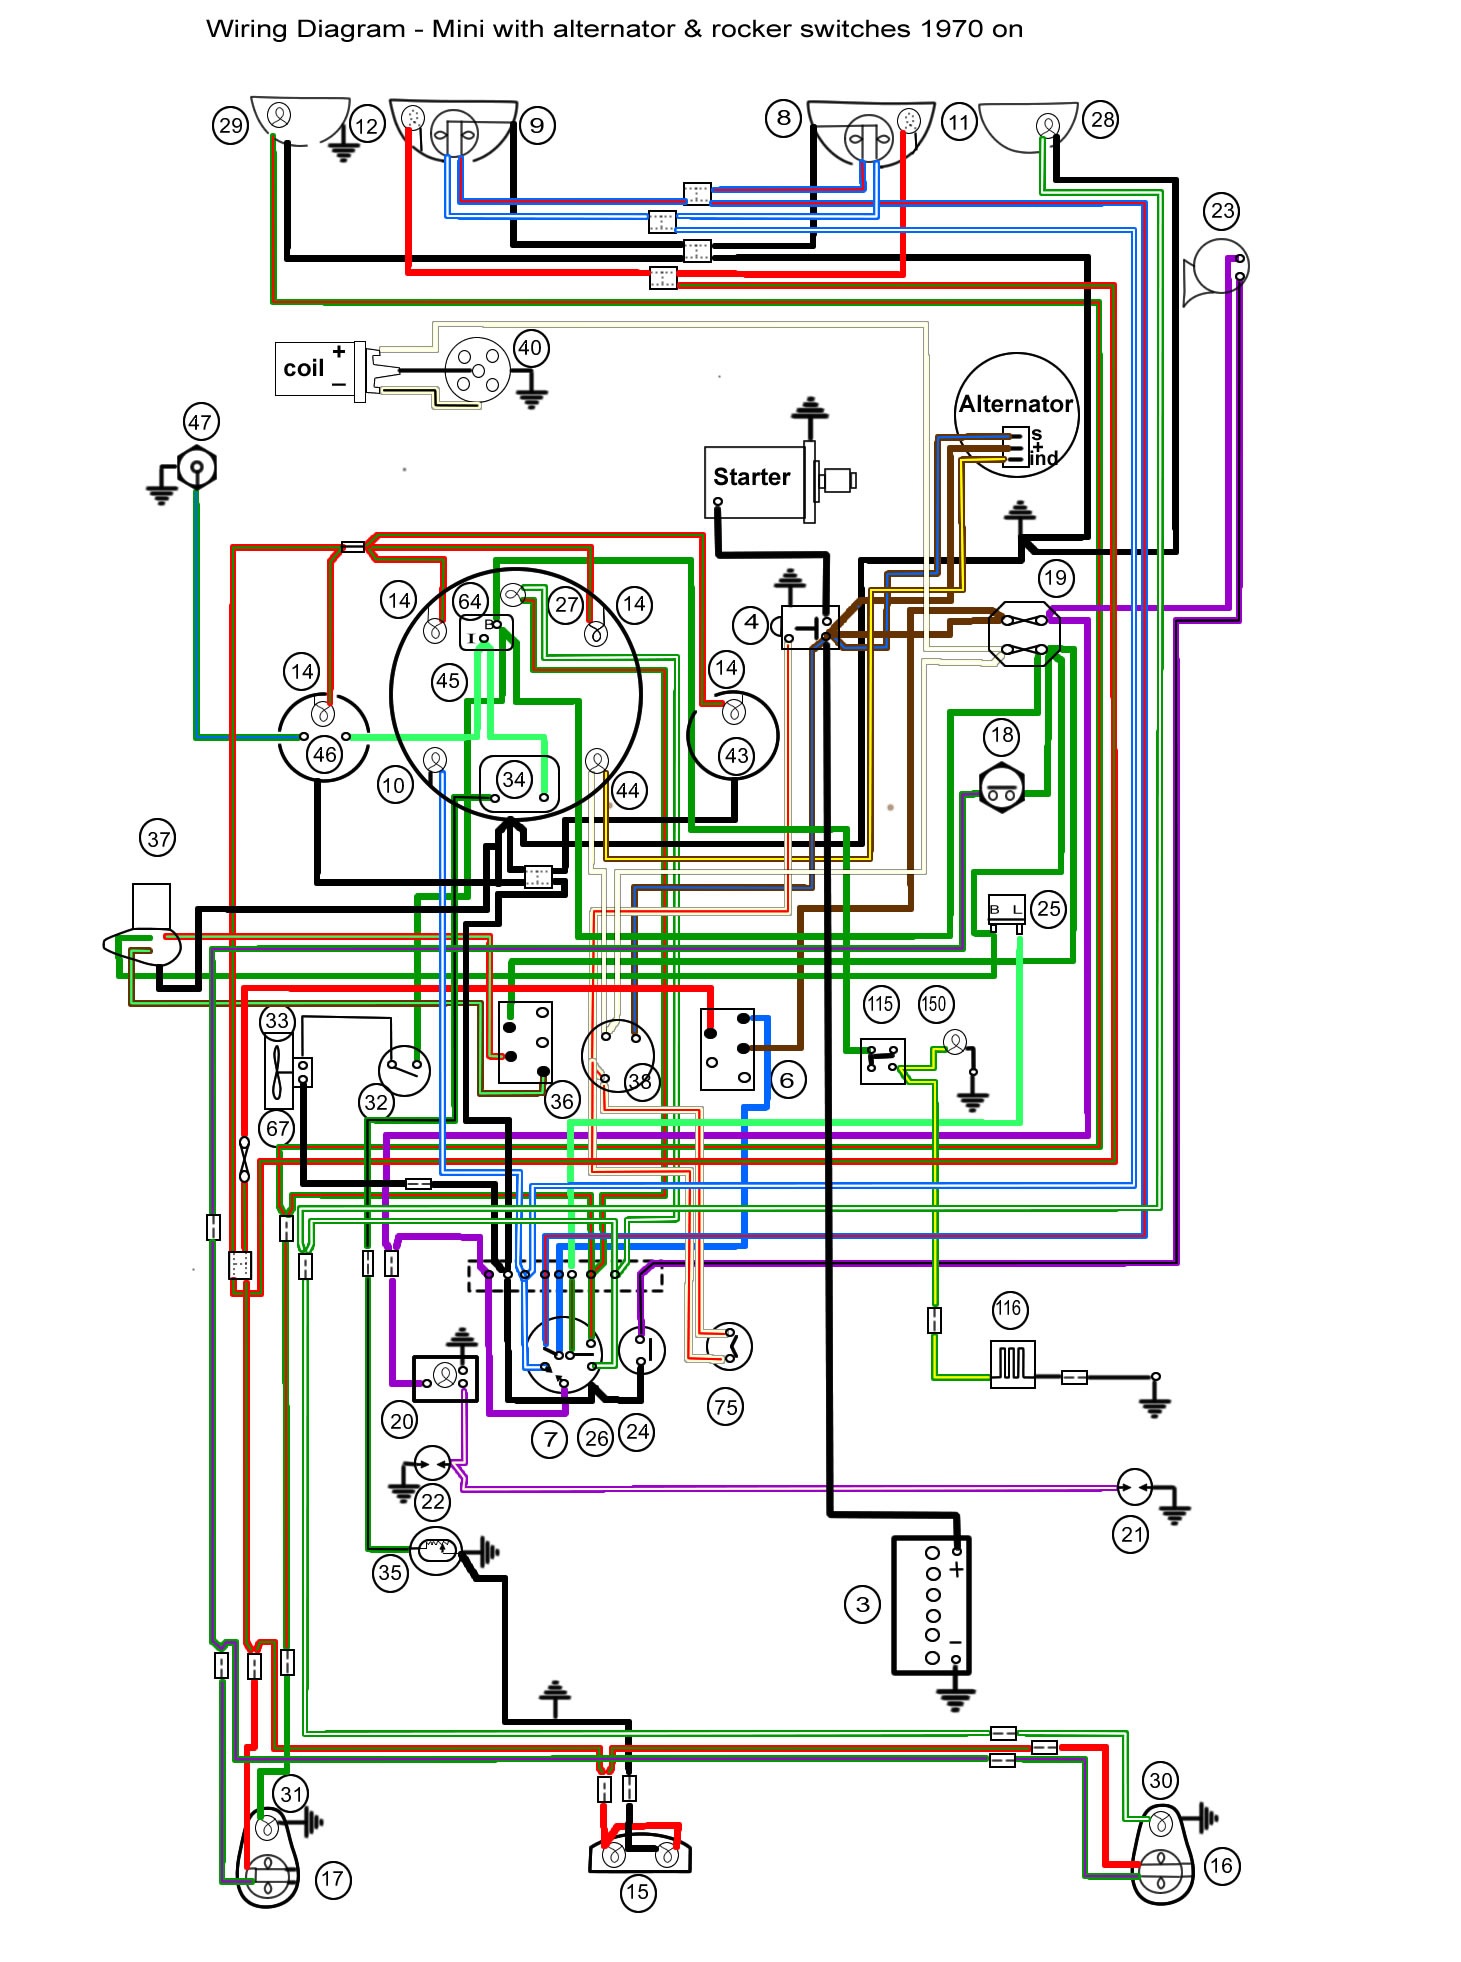 2011 Mini Cooper Wiring Diagram Online Schematic Diagram \u2022 Mini Cooper  Countryman Problems 2011 Mini Countryman Fuse Diagram